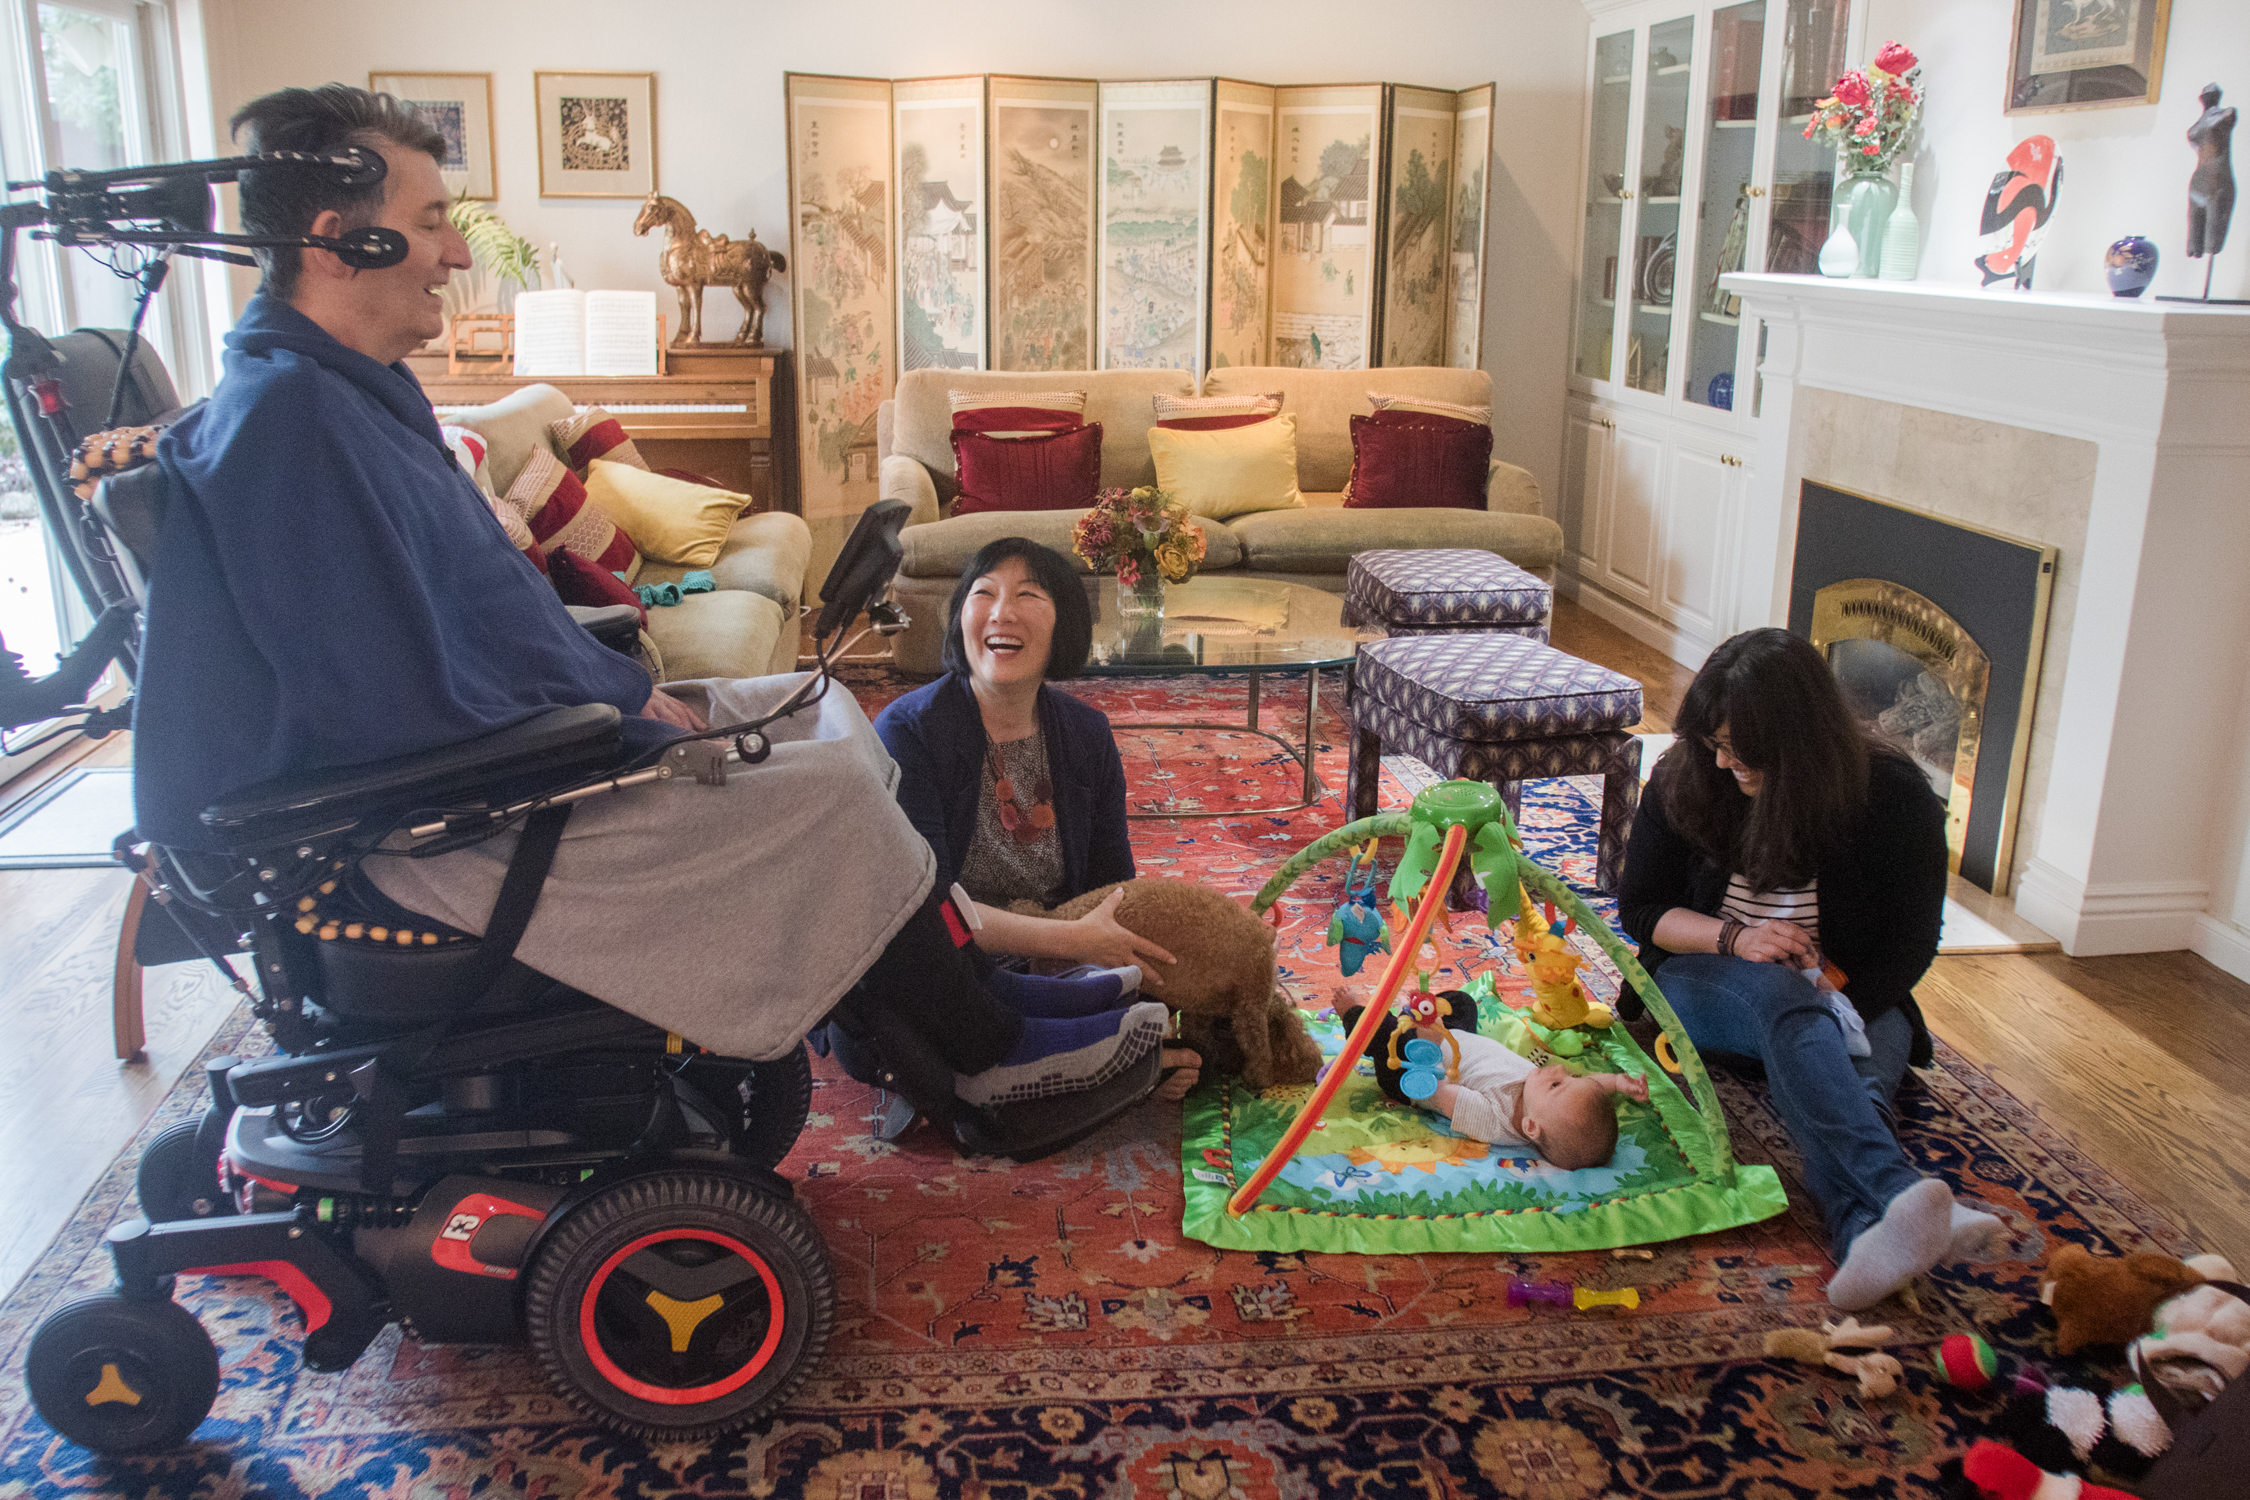 Jon Ferraiolo spends time with his daughter, Nikki Ferraiolo, and grandson, Theo, alongside his wife, Karen Kang, at their home on March 13, 2018. Nikki Ferraiolo, who lives in Washington, D.C., flies out to visit her parents about once a month.